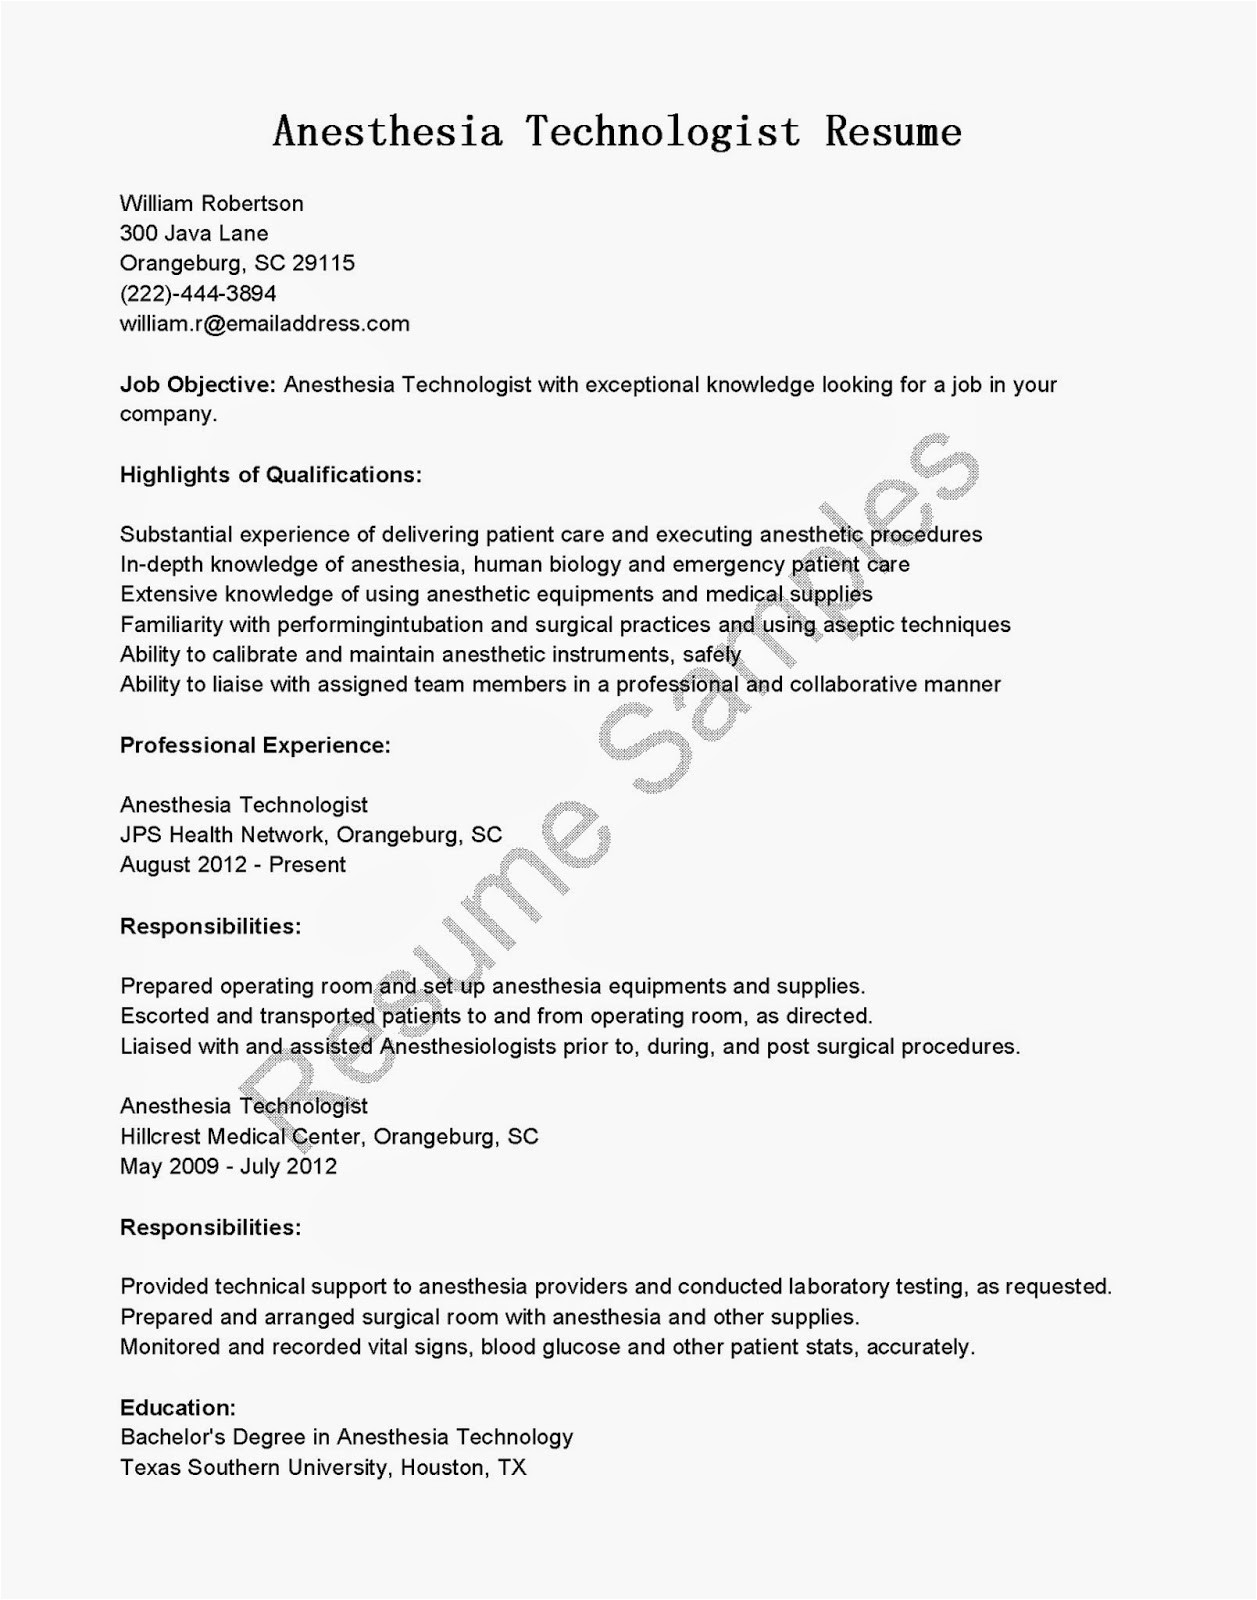 anesthesia technologist resume sample